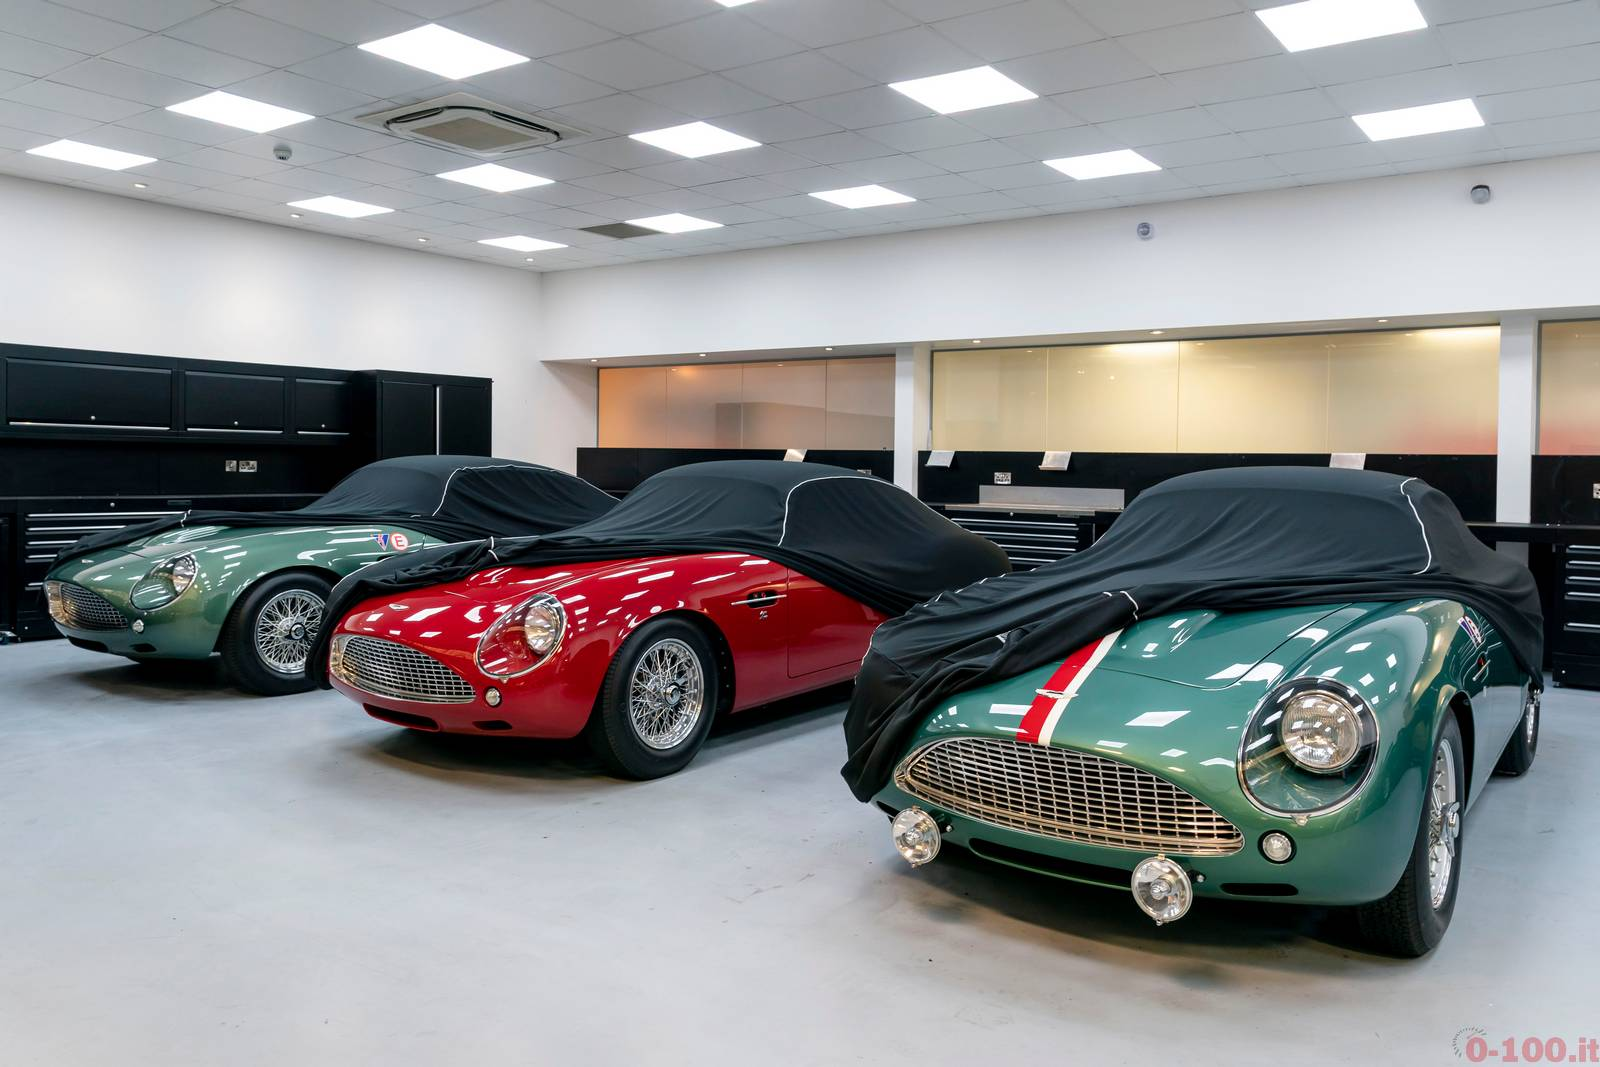 martin_db4_gtz_sanction_3_zagato_centenary_collection_0-100_7